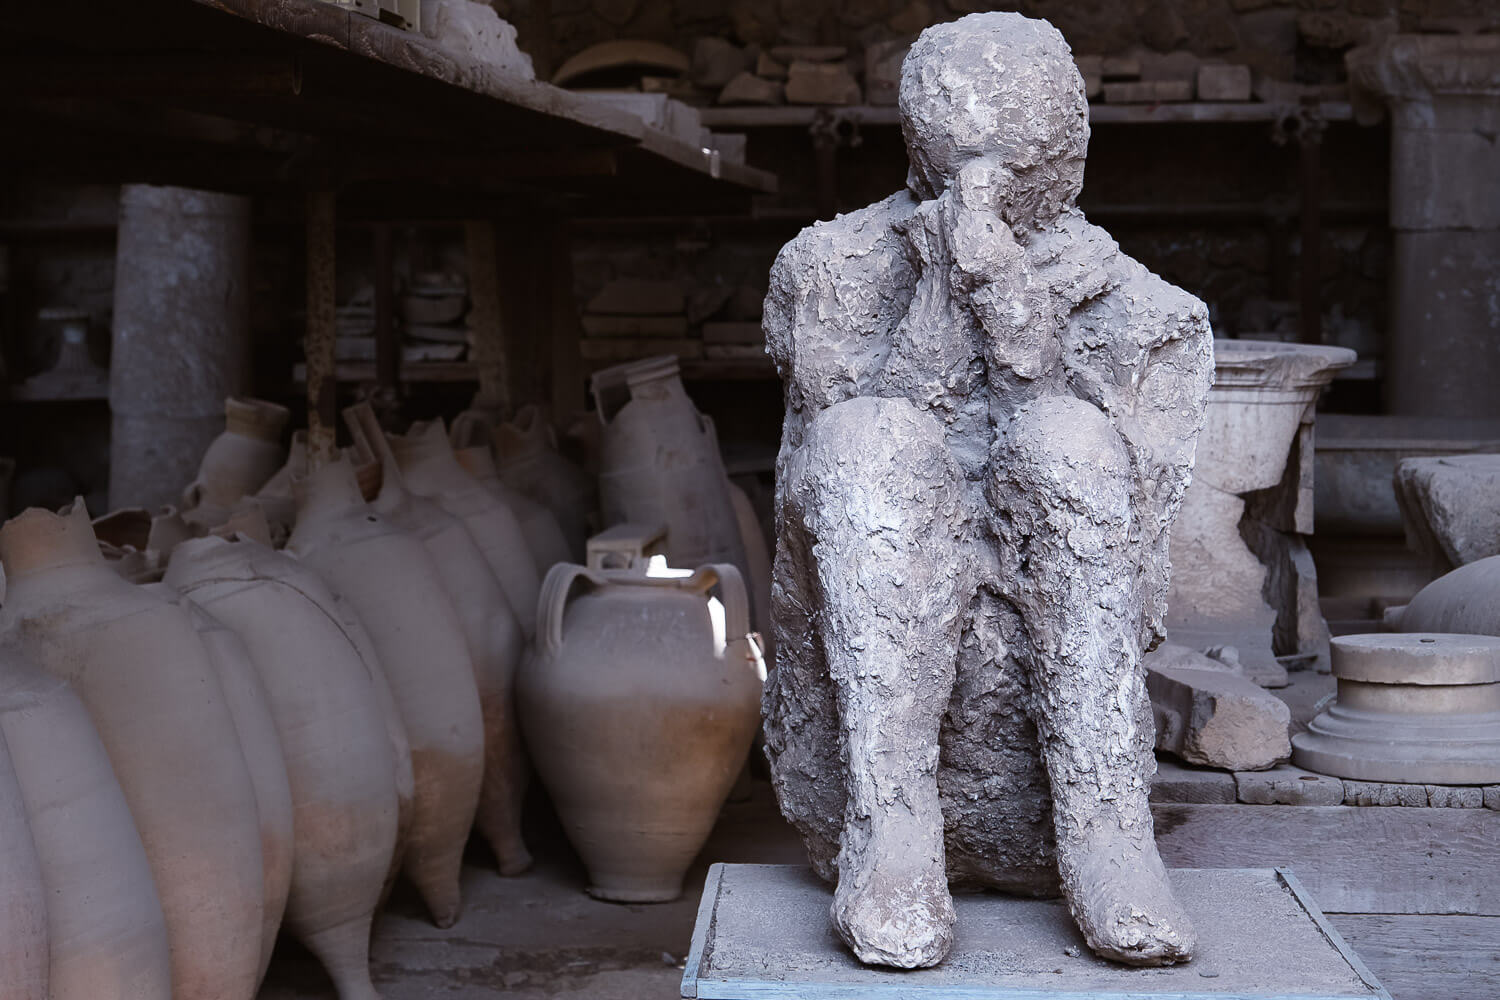 """The cast of a victim of Pompeii. Travel photography and guide by © Natasha Lequepeys for """"And Then I Met Yoko"""". #pompeii #italy #fujifilm #travelphotography"""